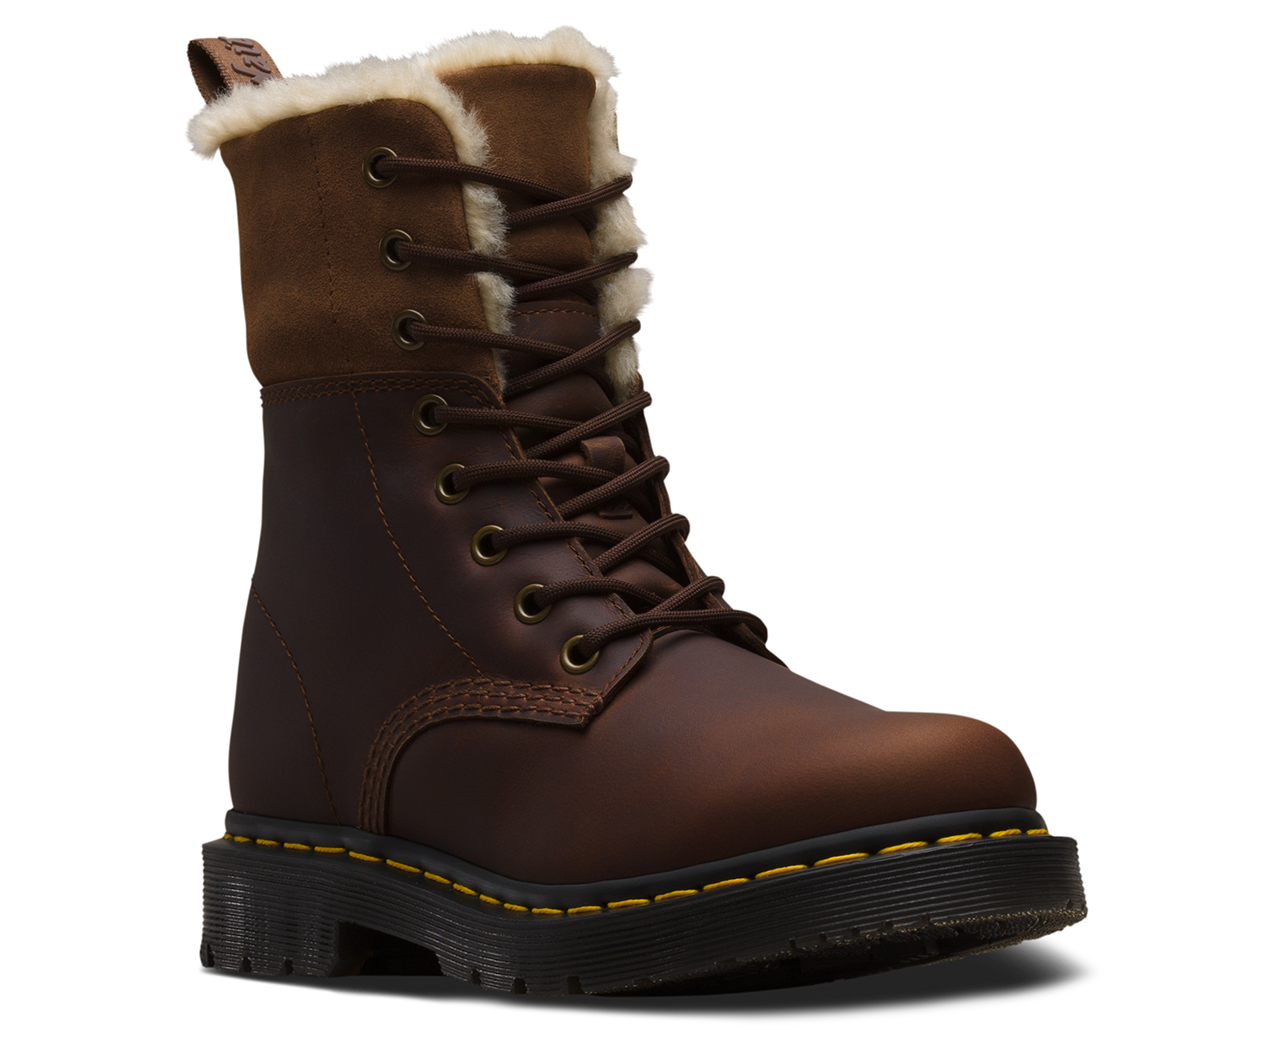 DM'S Wintergrip ShoesDr KOLBERT Bootsamp; 1460 WINTERGRIPDM's mO0wyv8nN